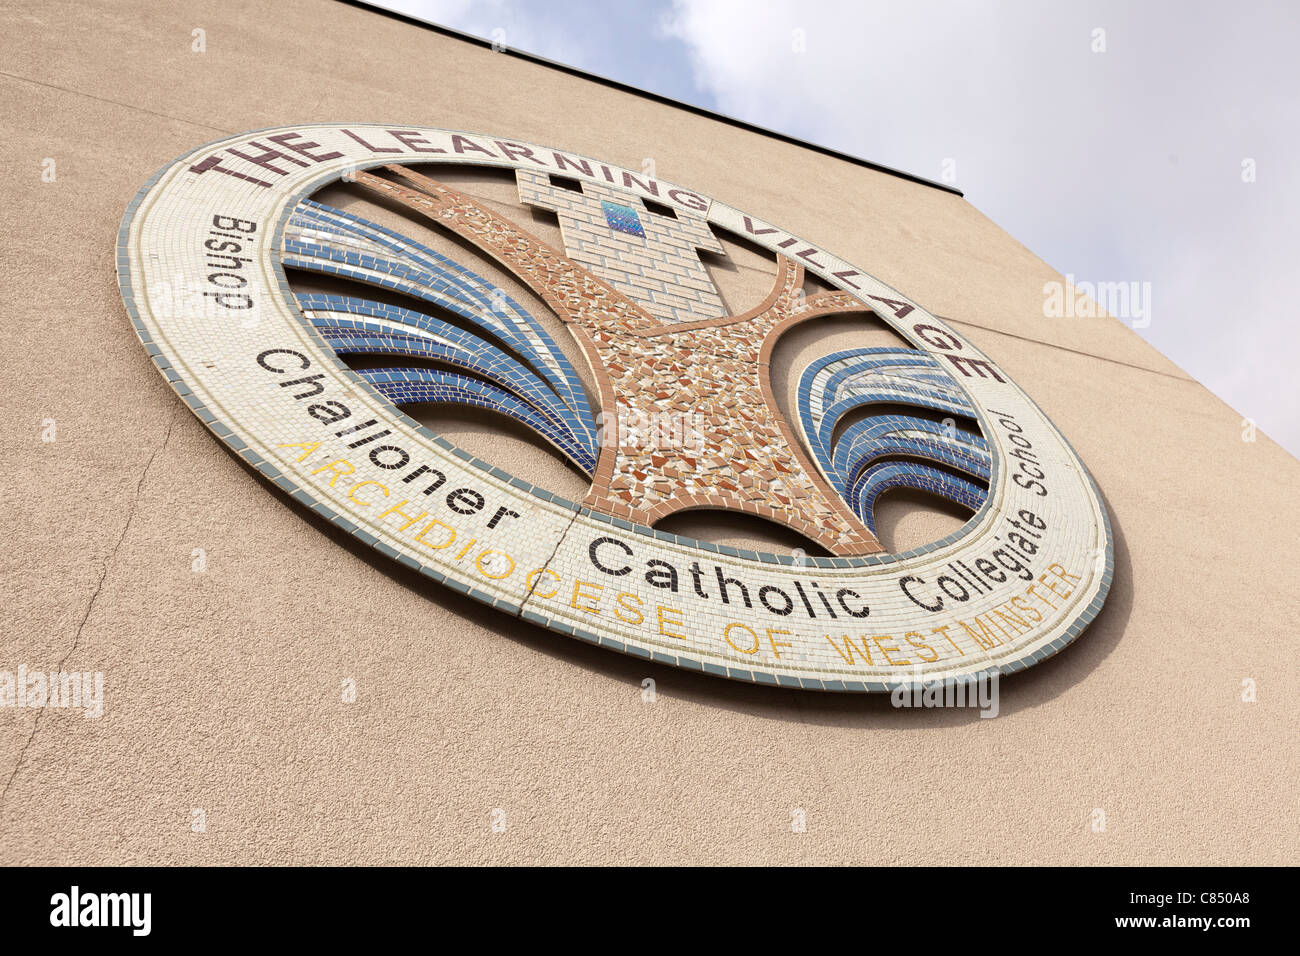 Logo of the The Learning Village - Bishop Challoner Catholic Collegiate school, Commercial Road, London, UK. - Stock Image